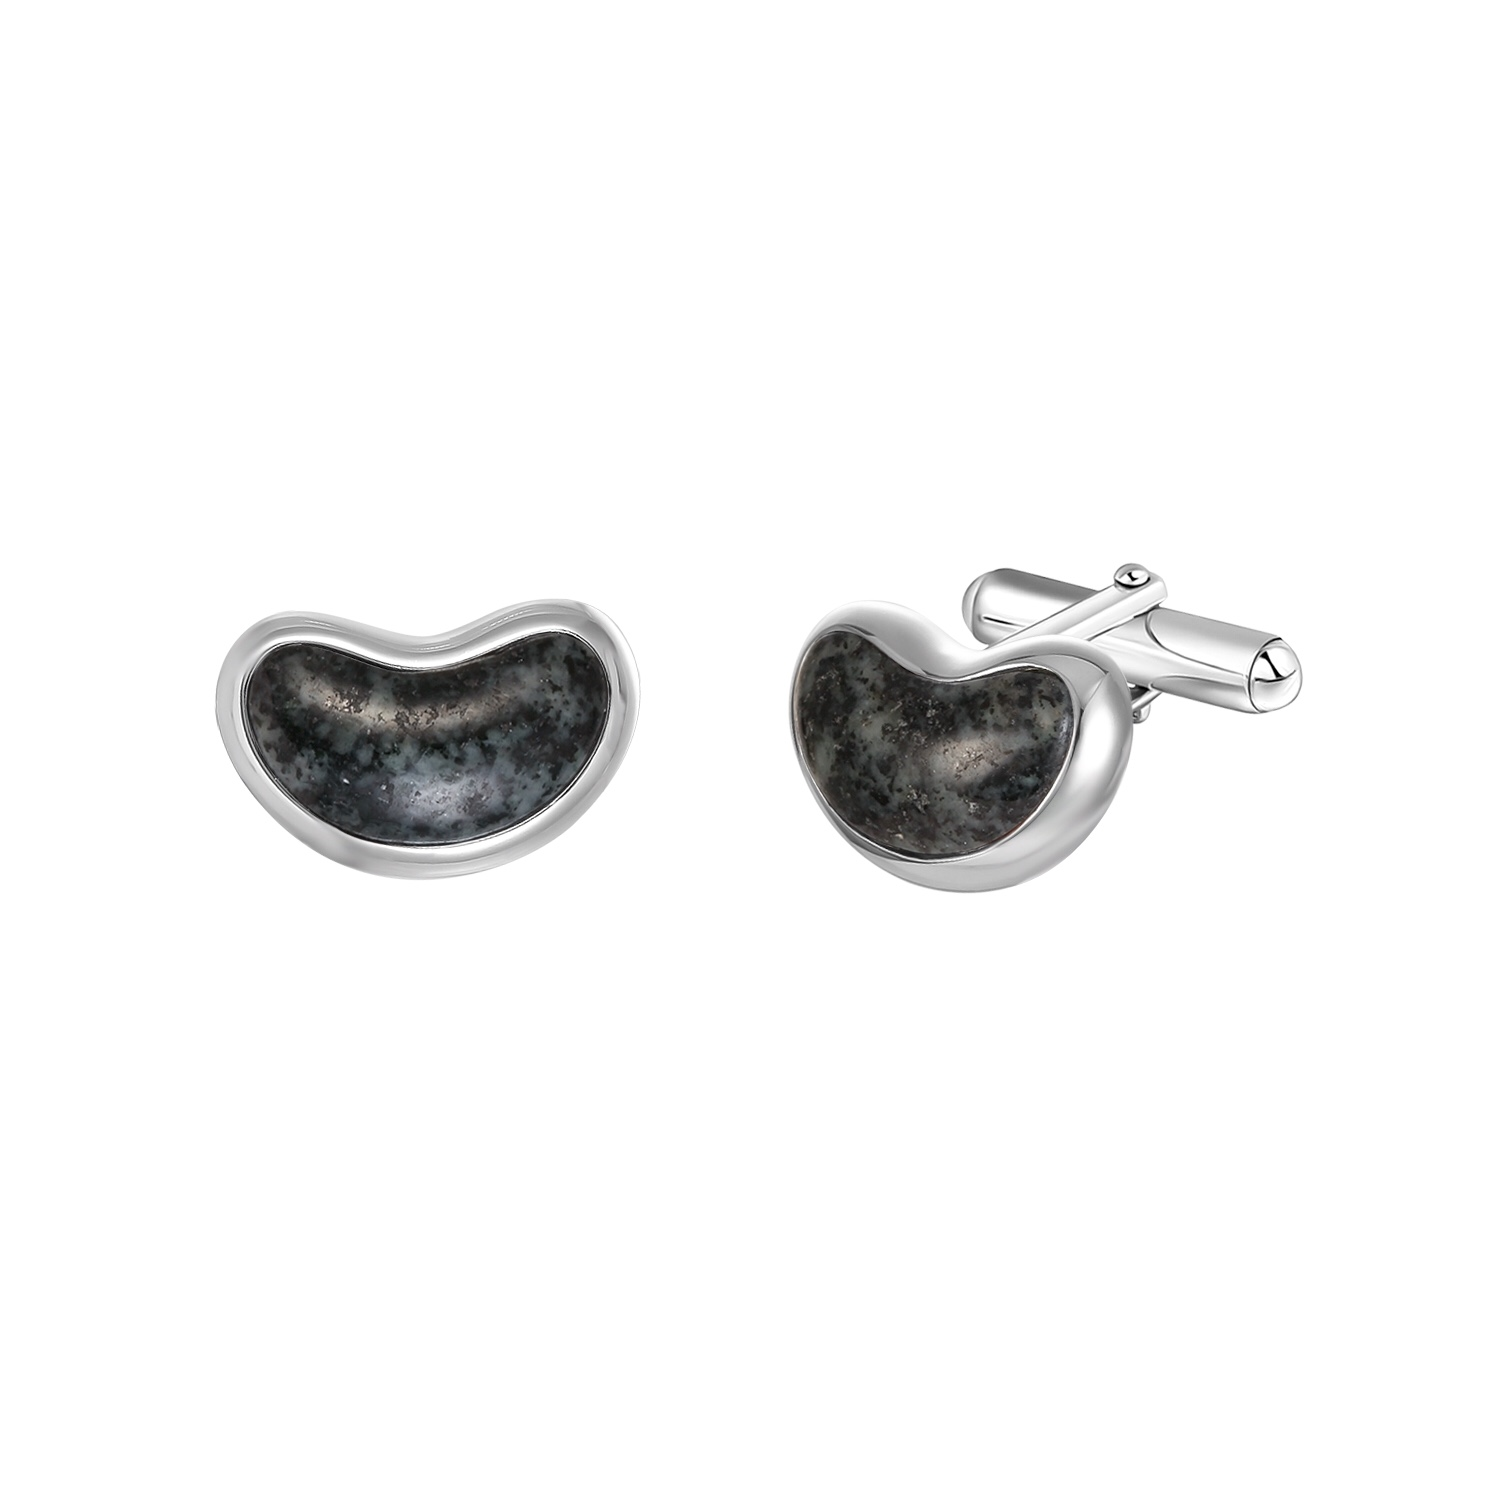 Jersey Granite Bean Cufflinks